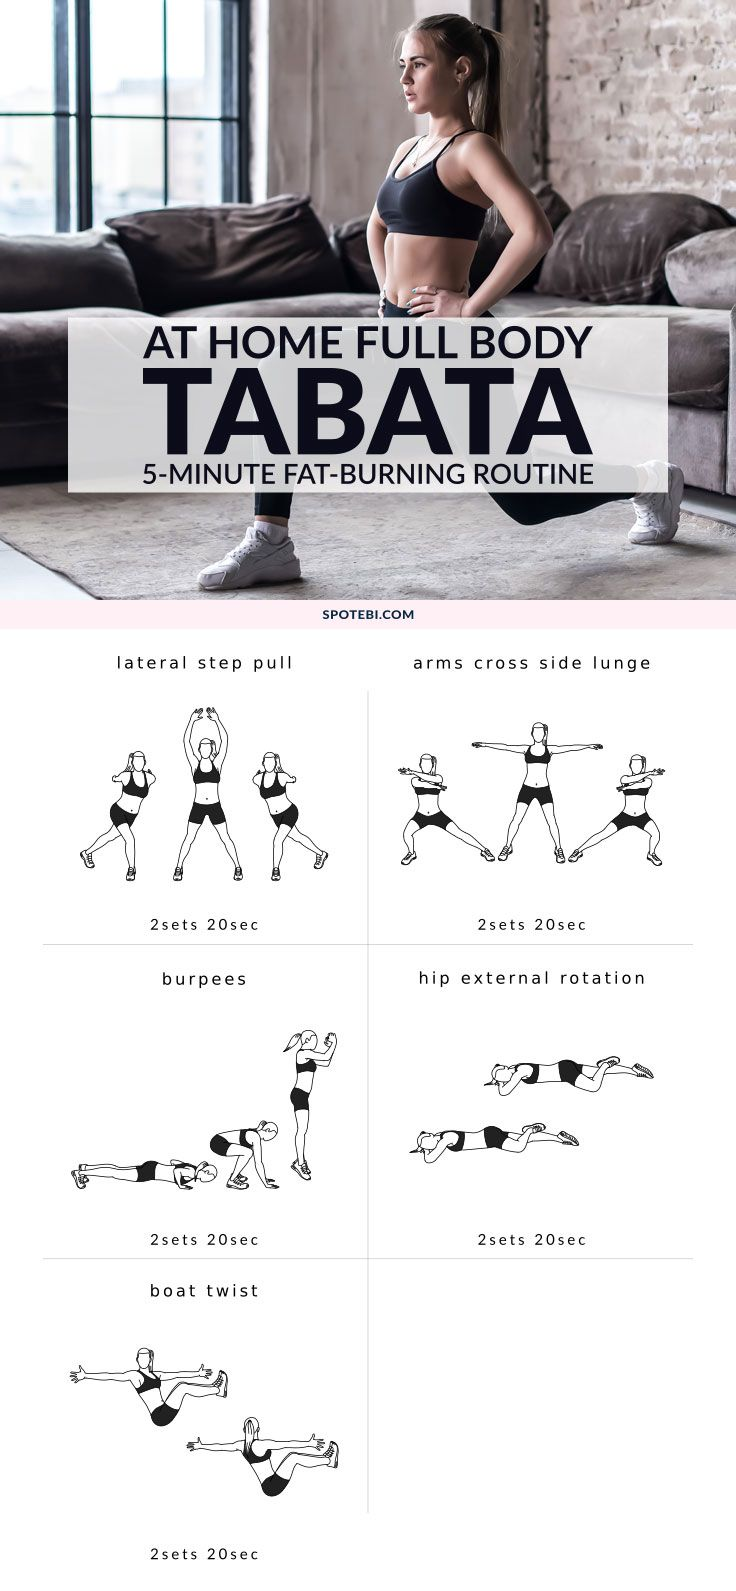 Aerobic And Anaerobic Exercise Examples  Aerobic Exercise Burns